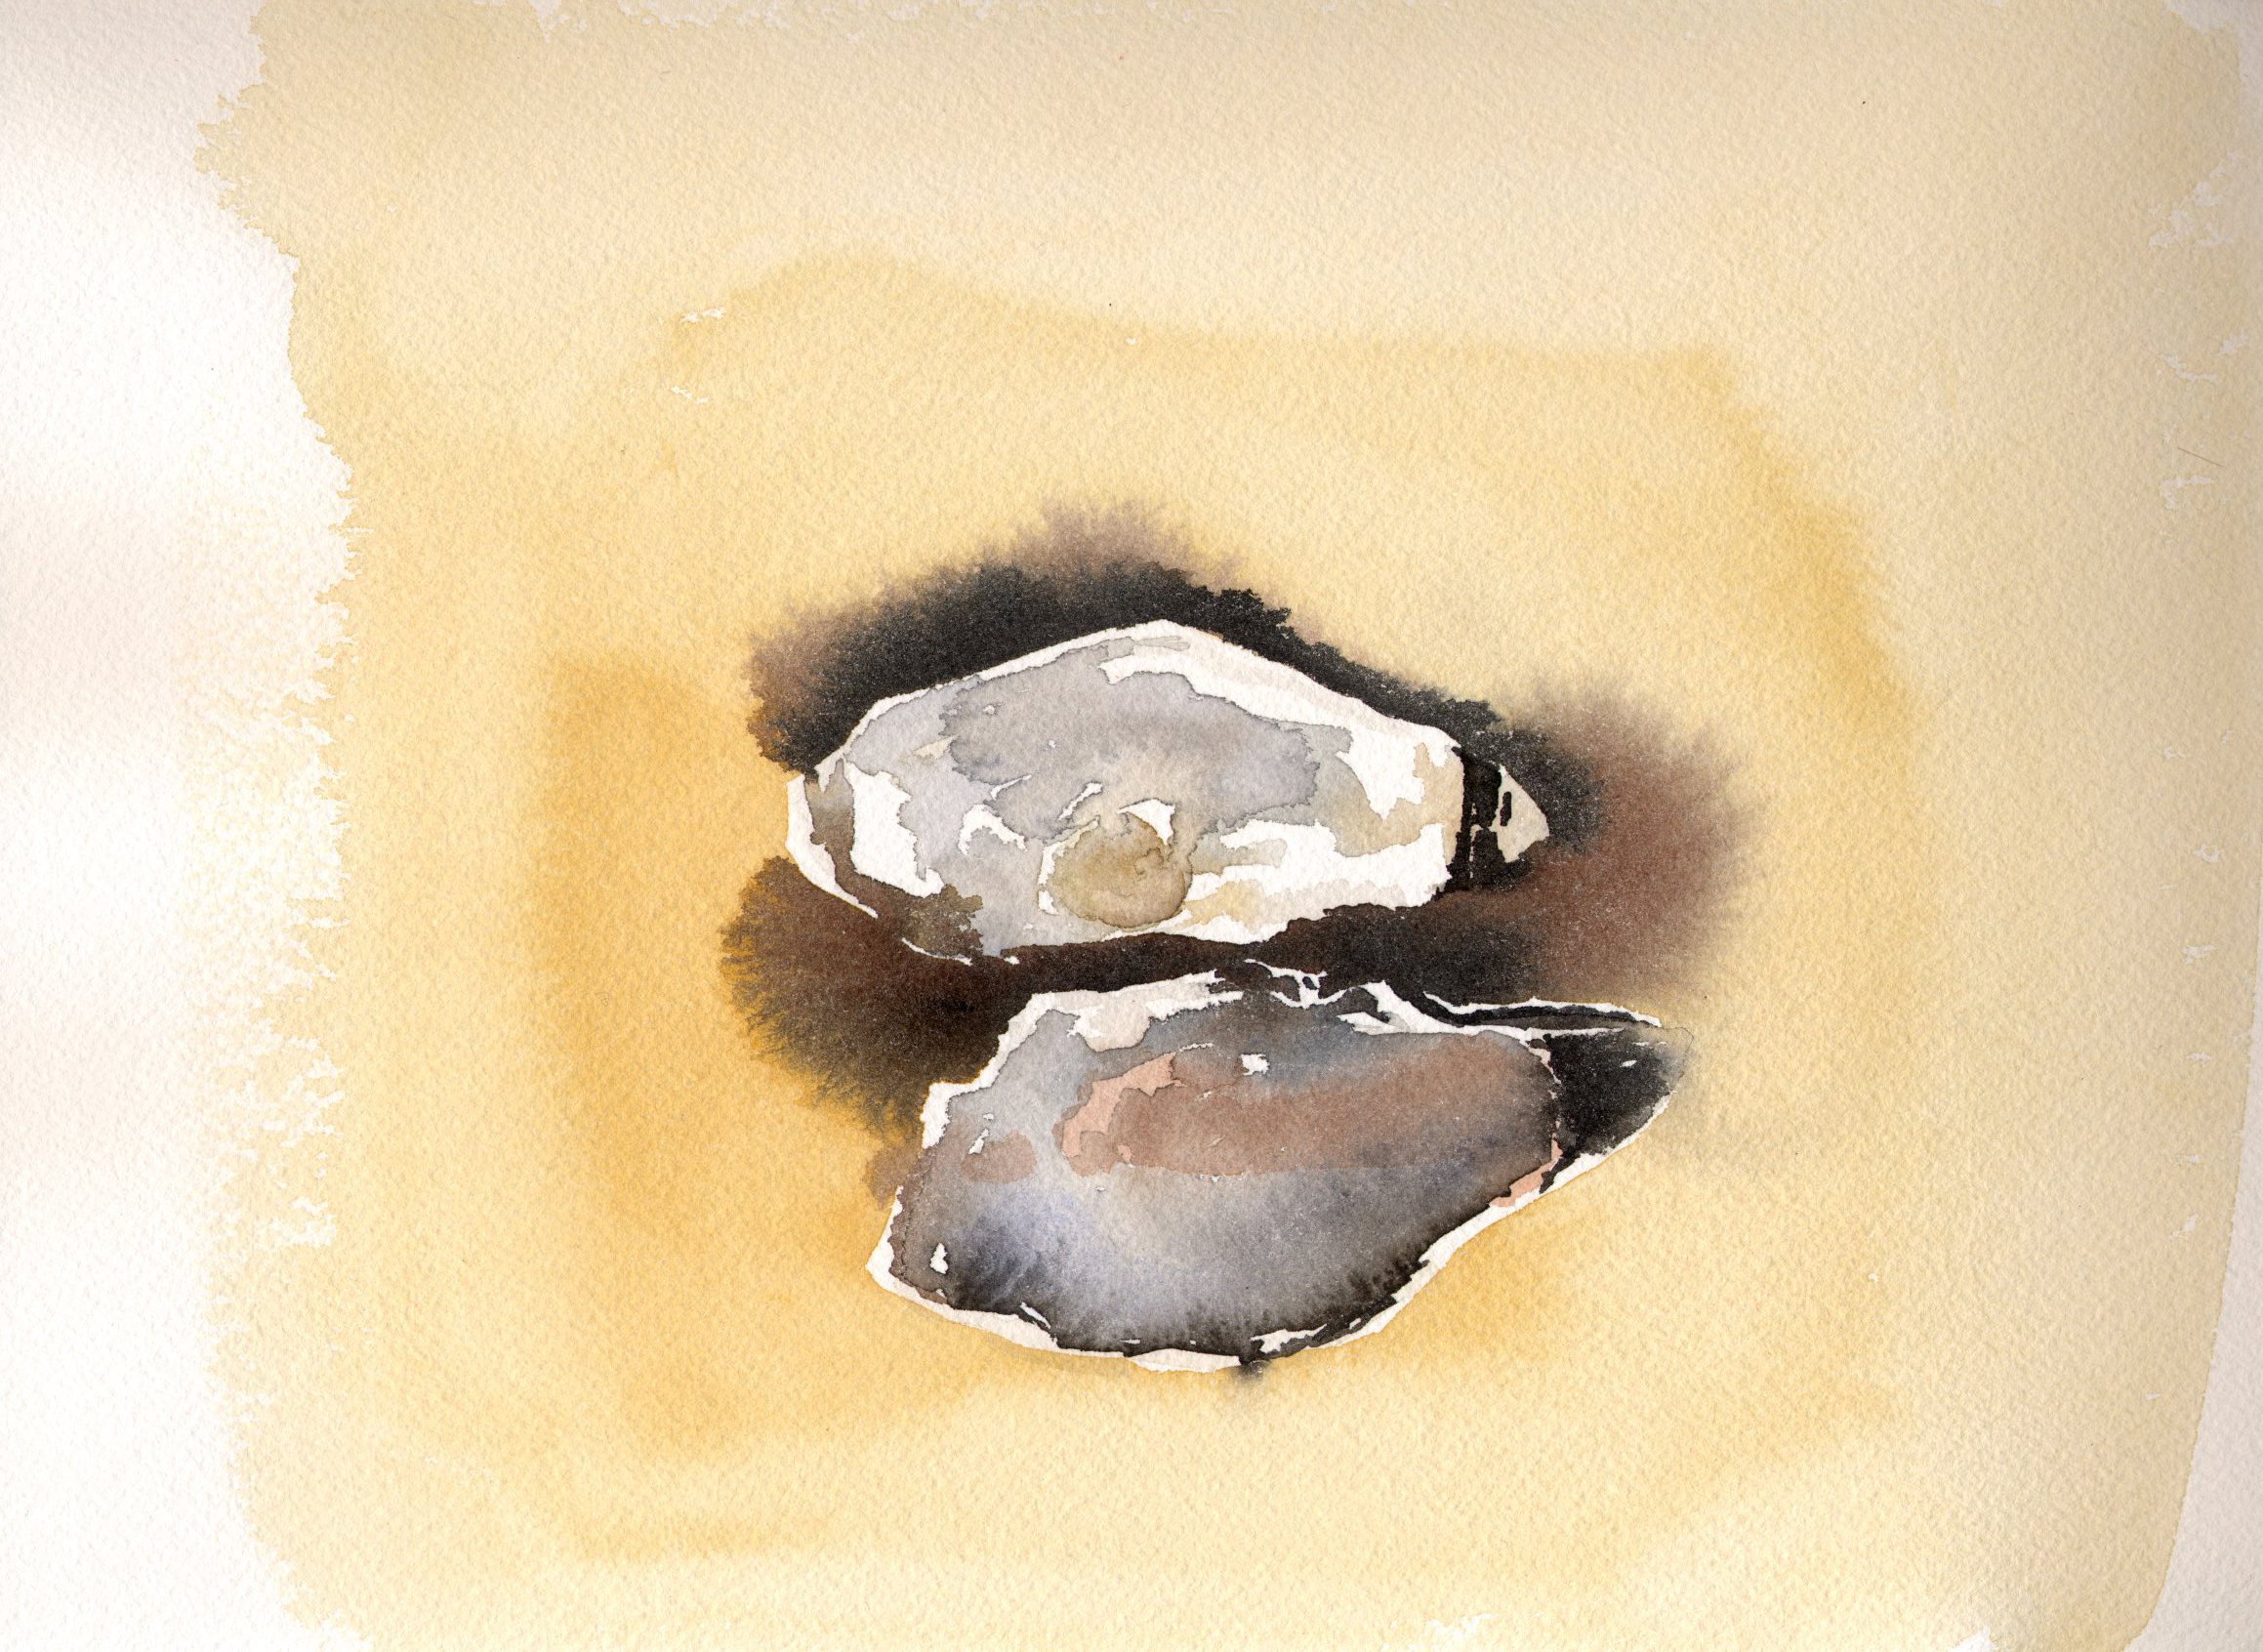 Watercolor Oyster Shells 3.jpg